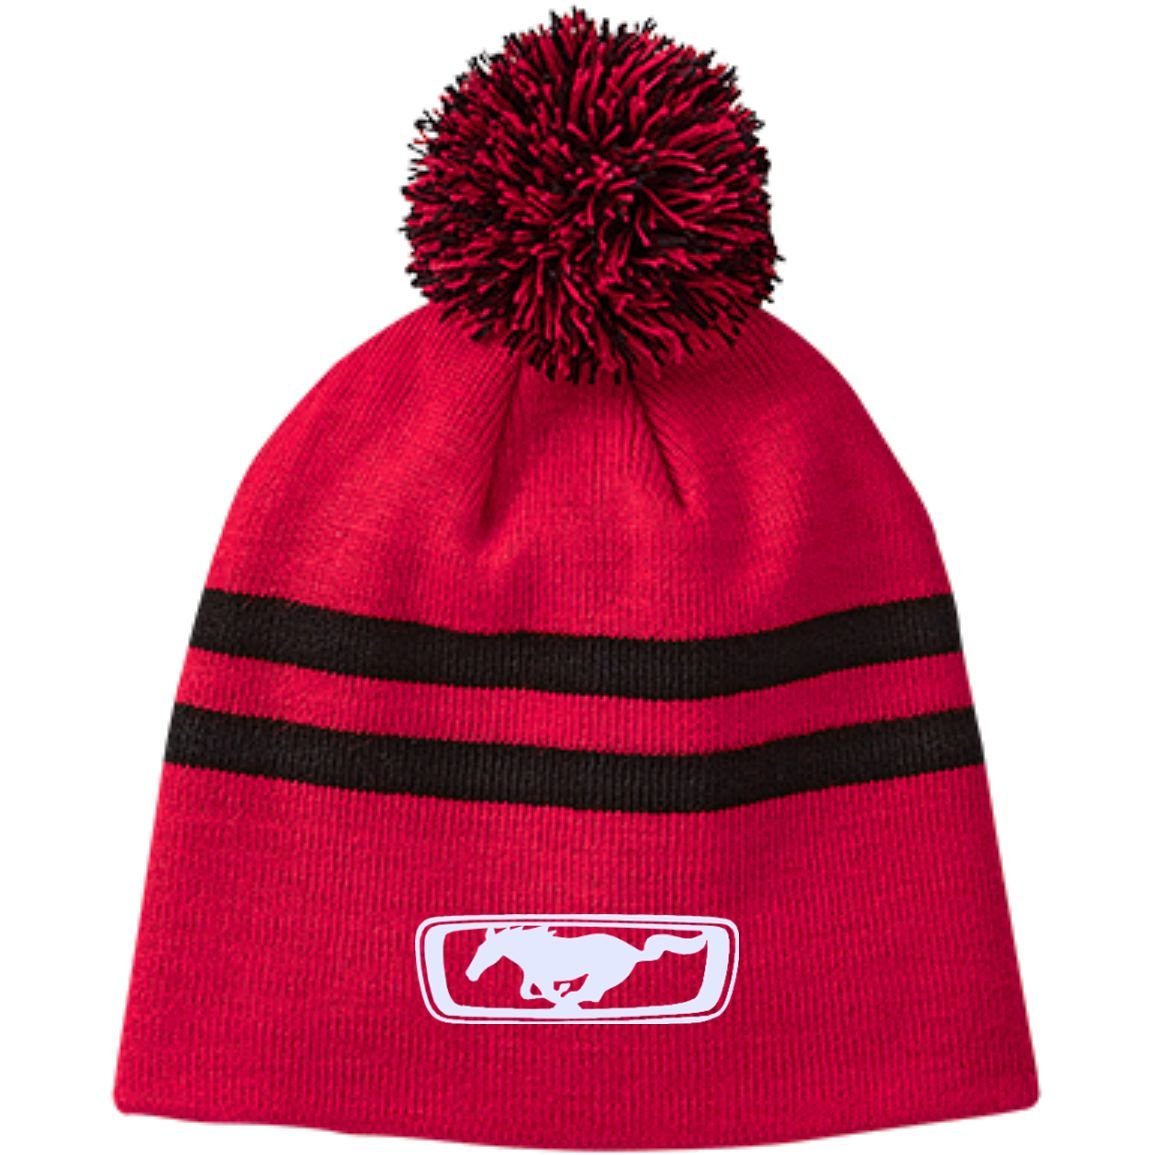 Mustang TT122 Team 365 Striped Pom Beanie